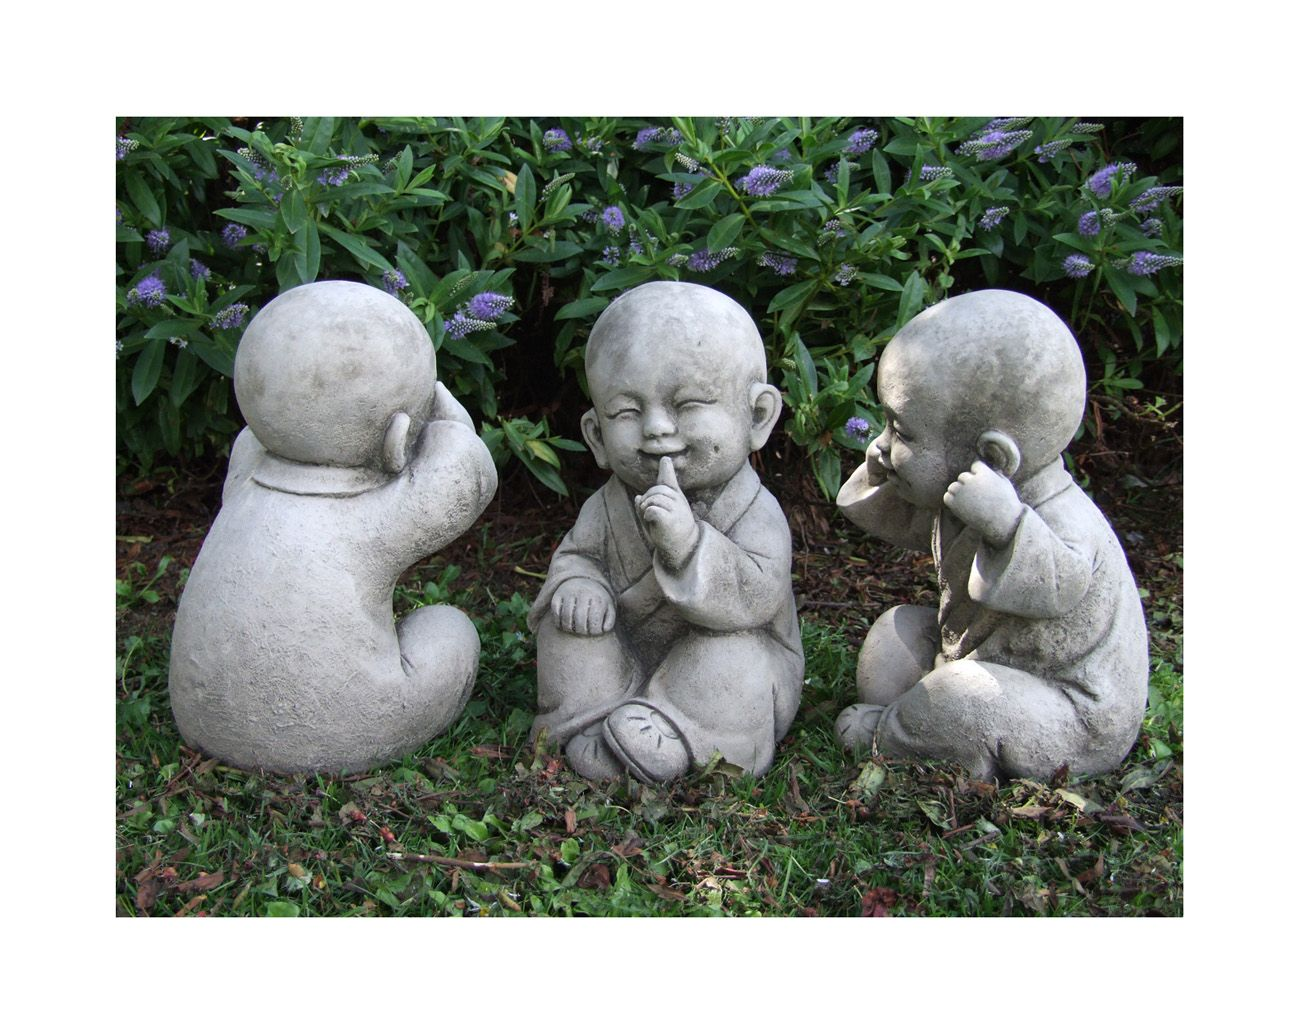 Garden Ornaments By Onefold Professionally Made 400 x 300